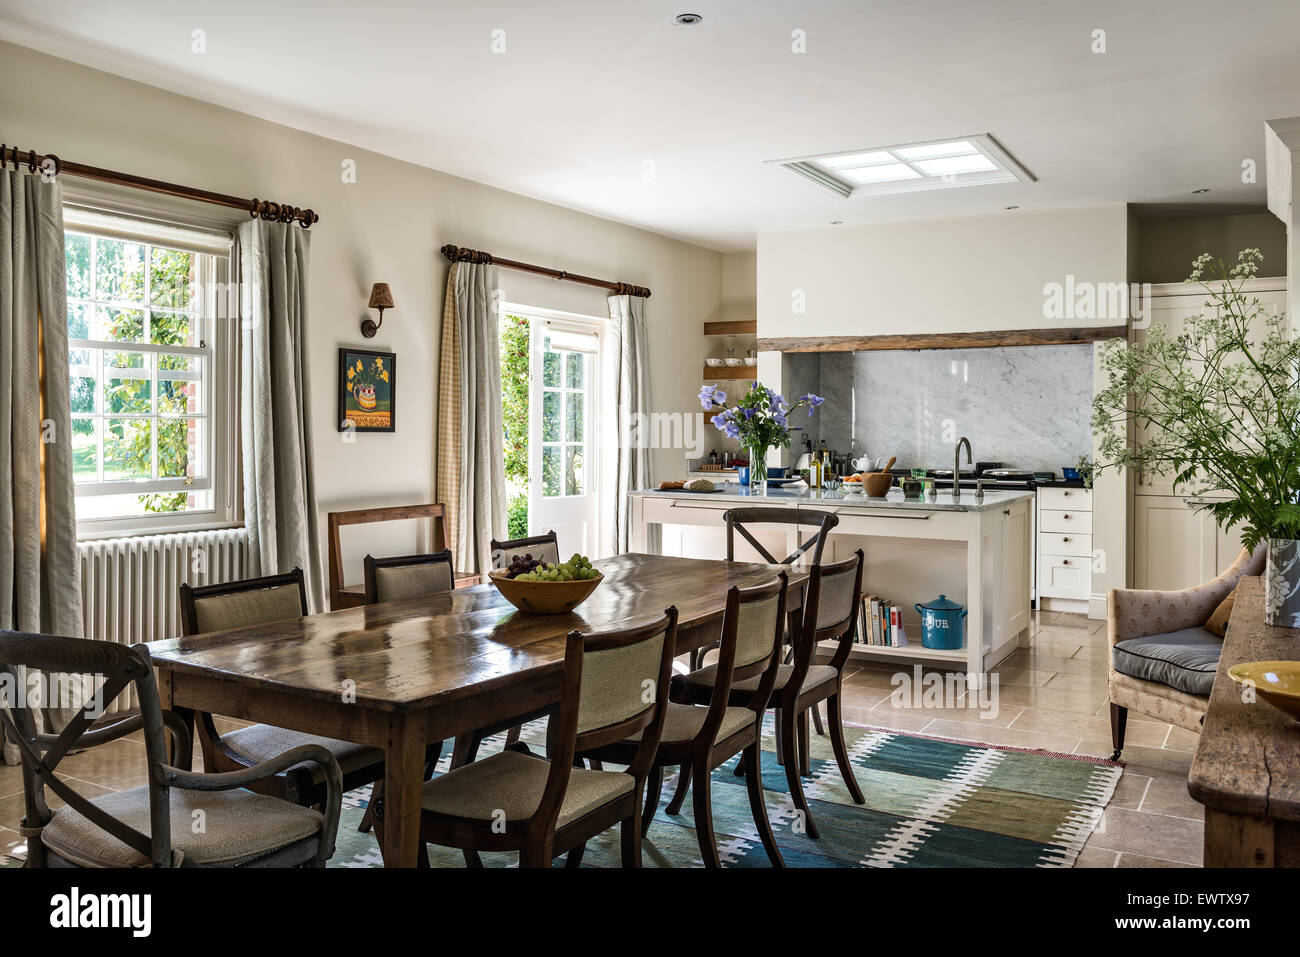 antique dining table with chairs in open plan kitchen dining room